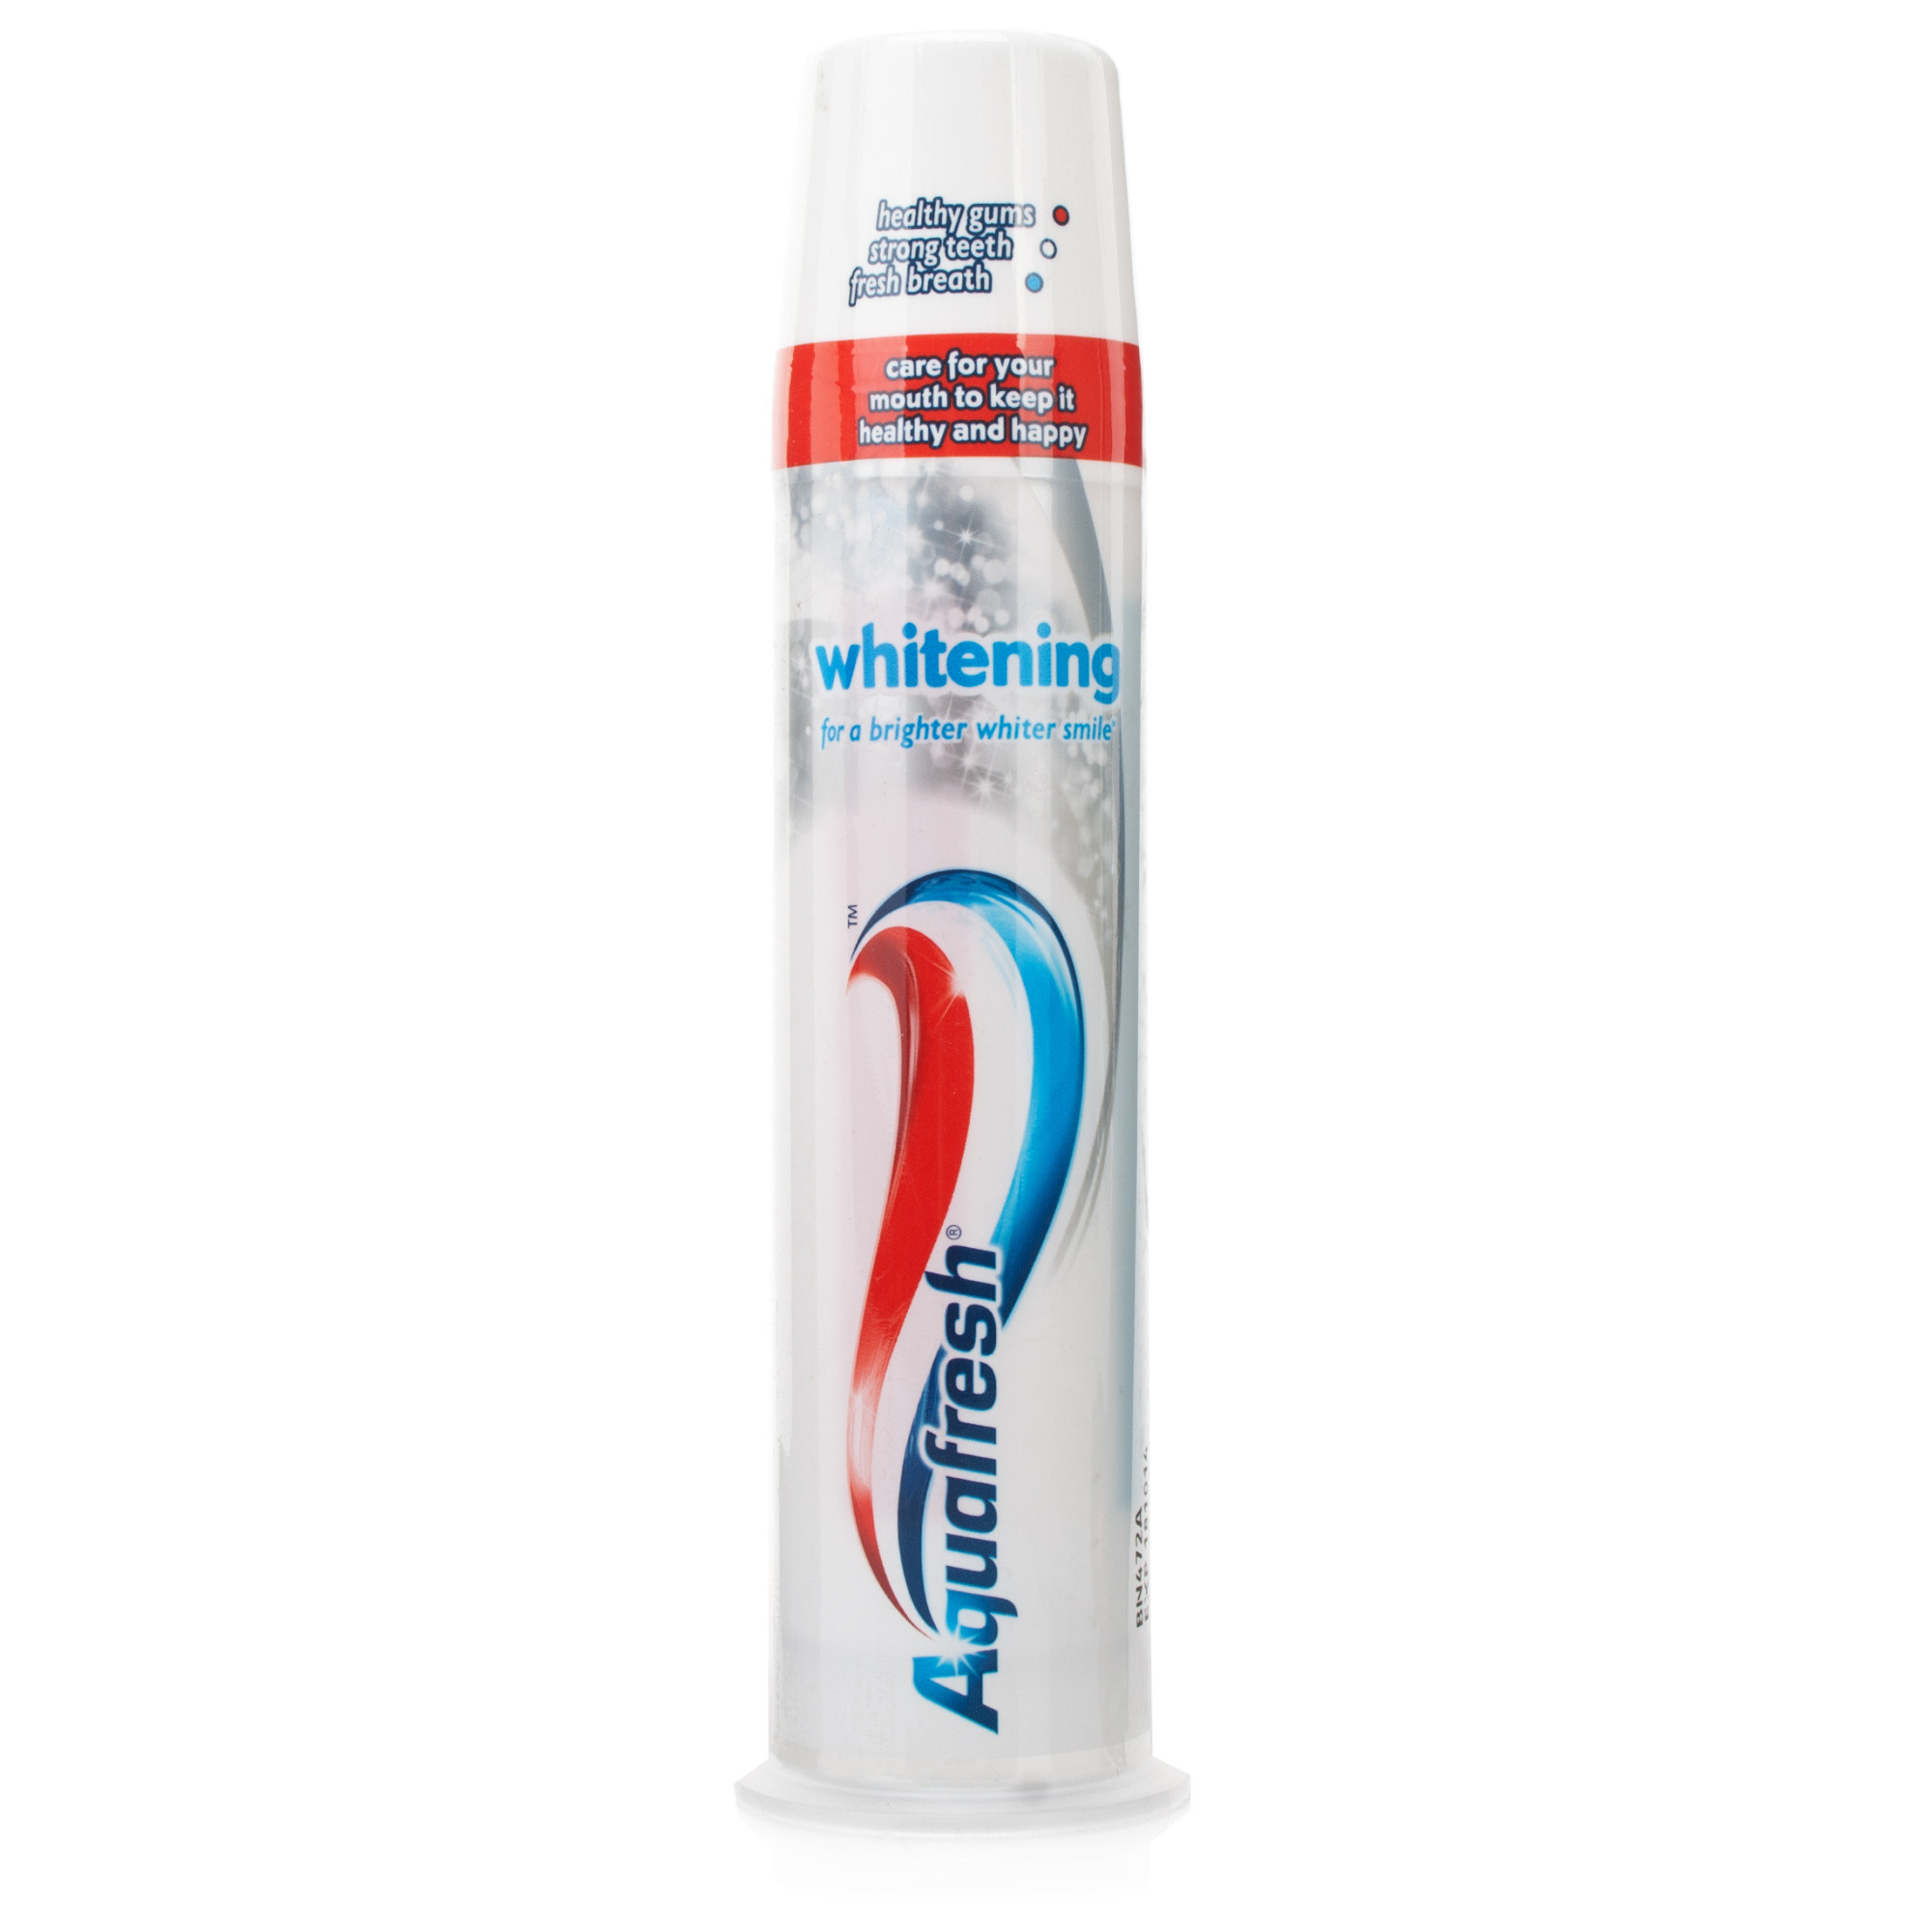 Aquafresh Whitening Toothpaste Pump | Chemist Direct